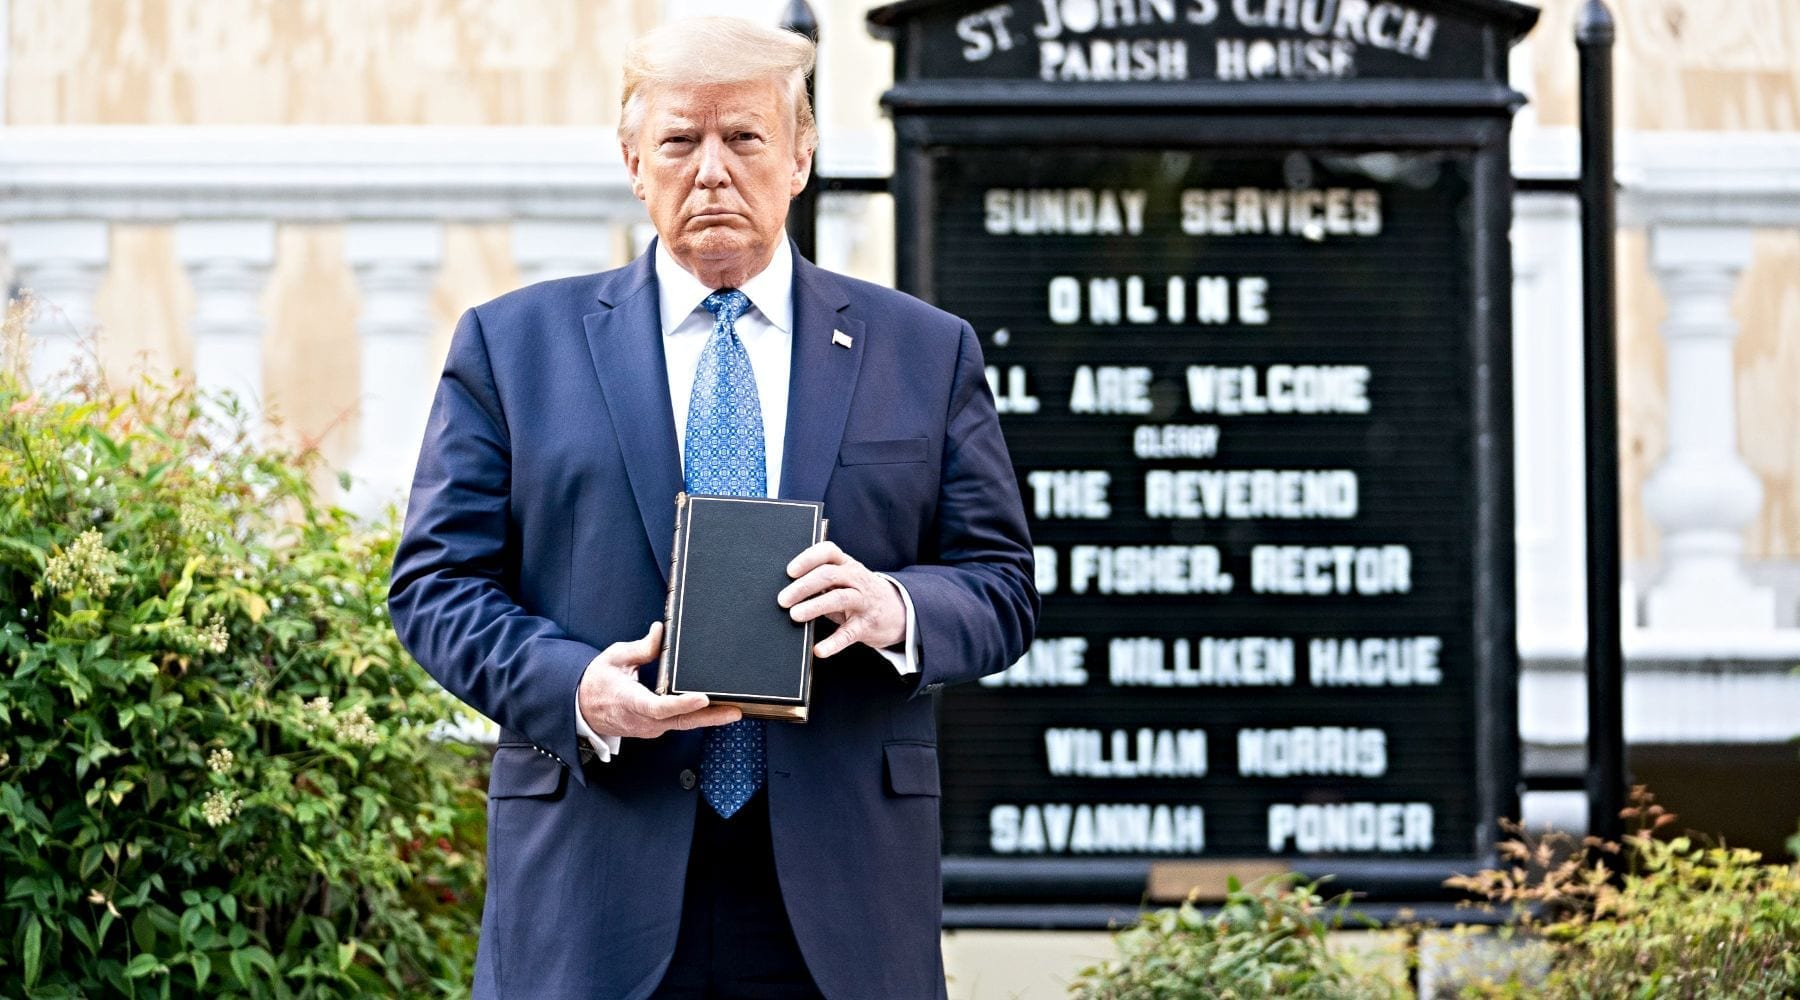 Trump's Staged Photo-op: Coded Message to Christian Nationalists